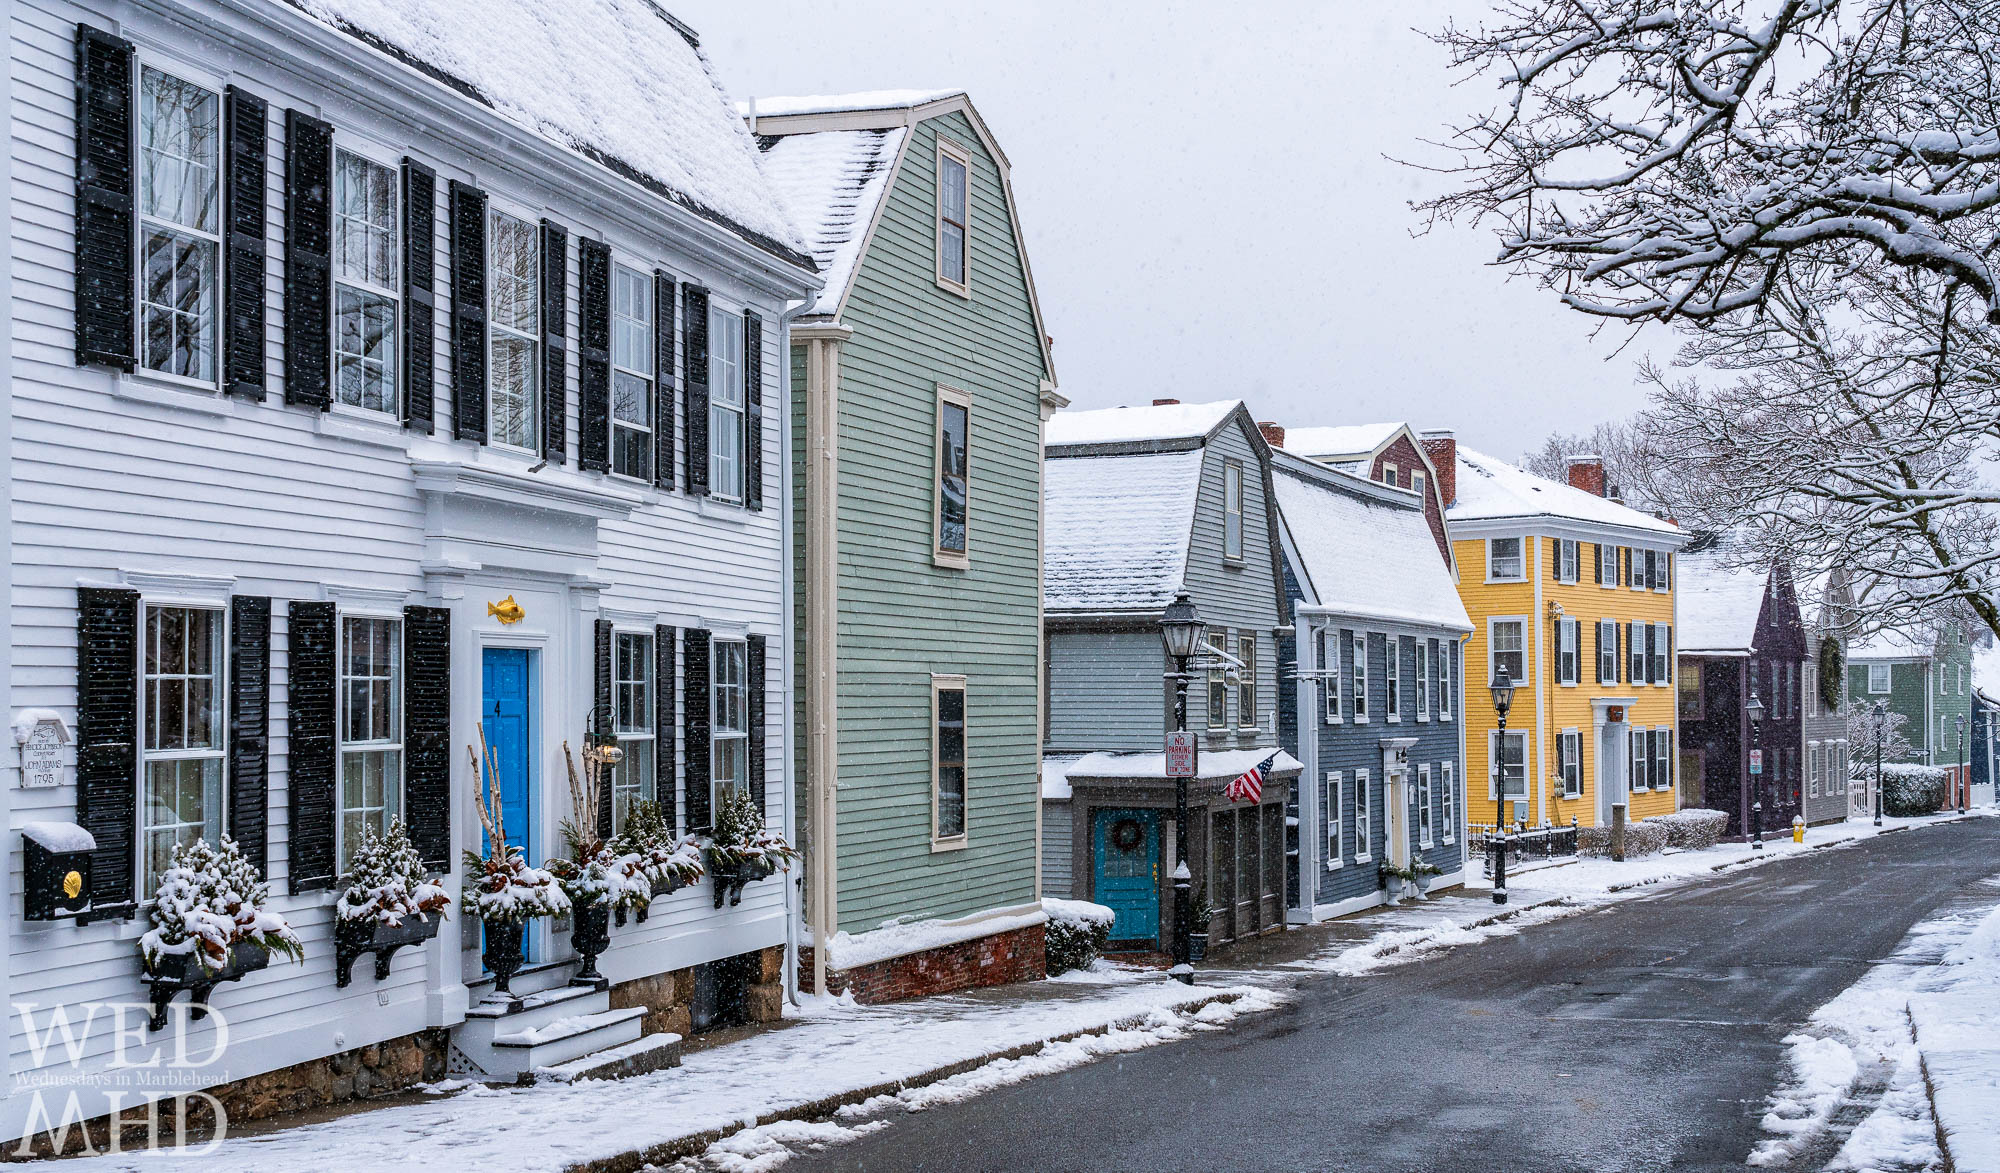 Falling snow coats roofs and sidewalks in white and seems to help the homes on State Street shine brighter on a January morning in Marblehead